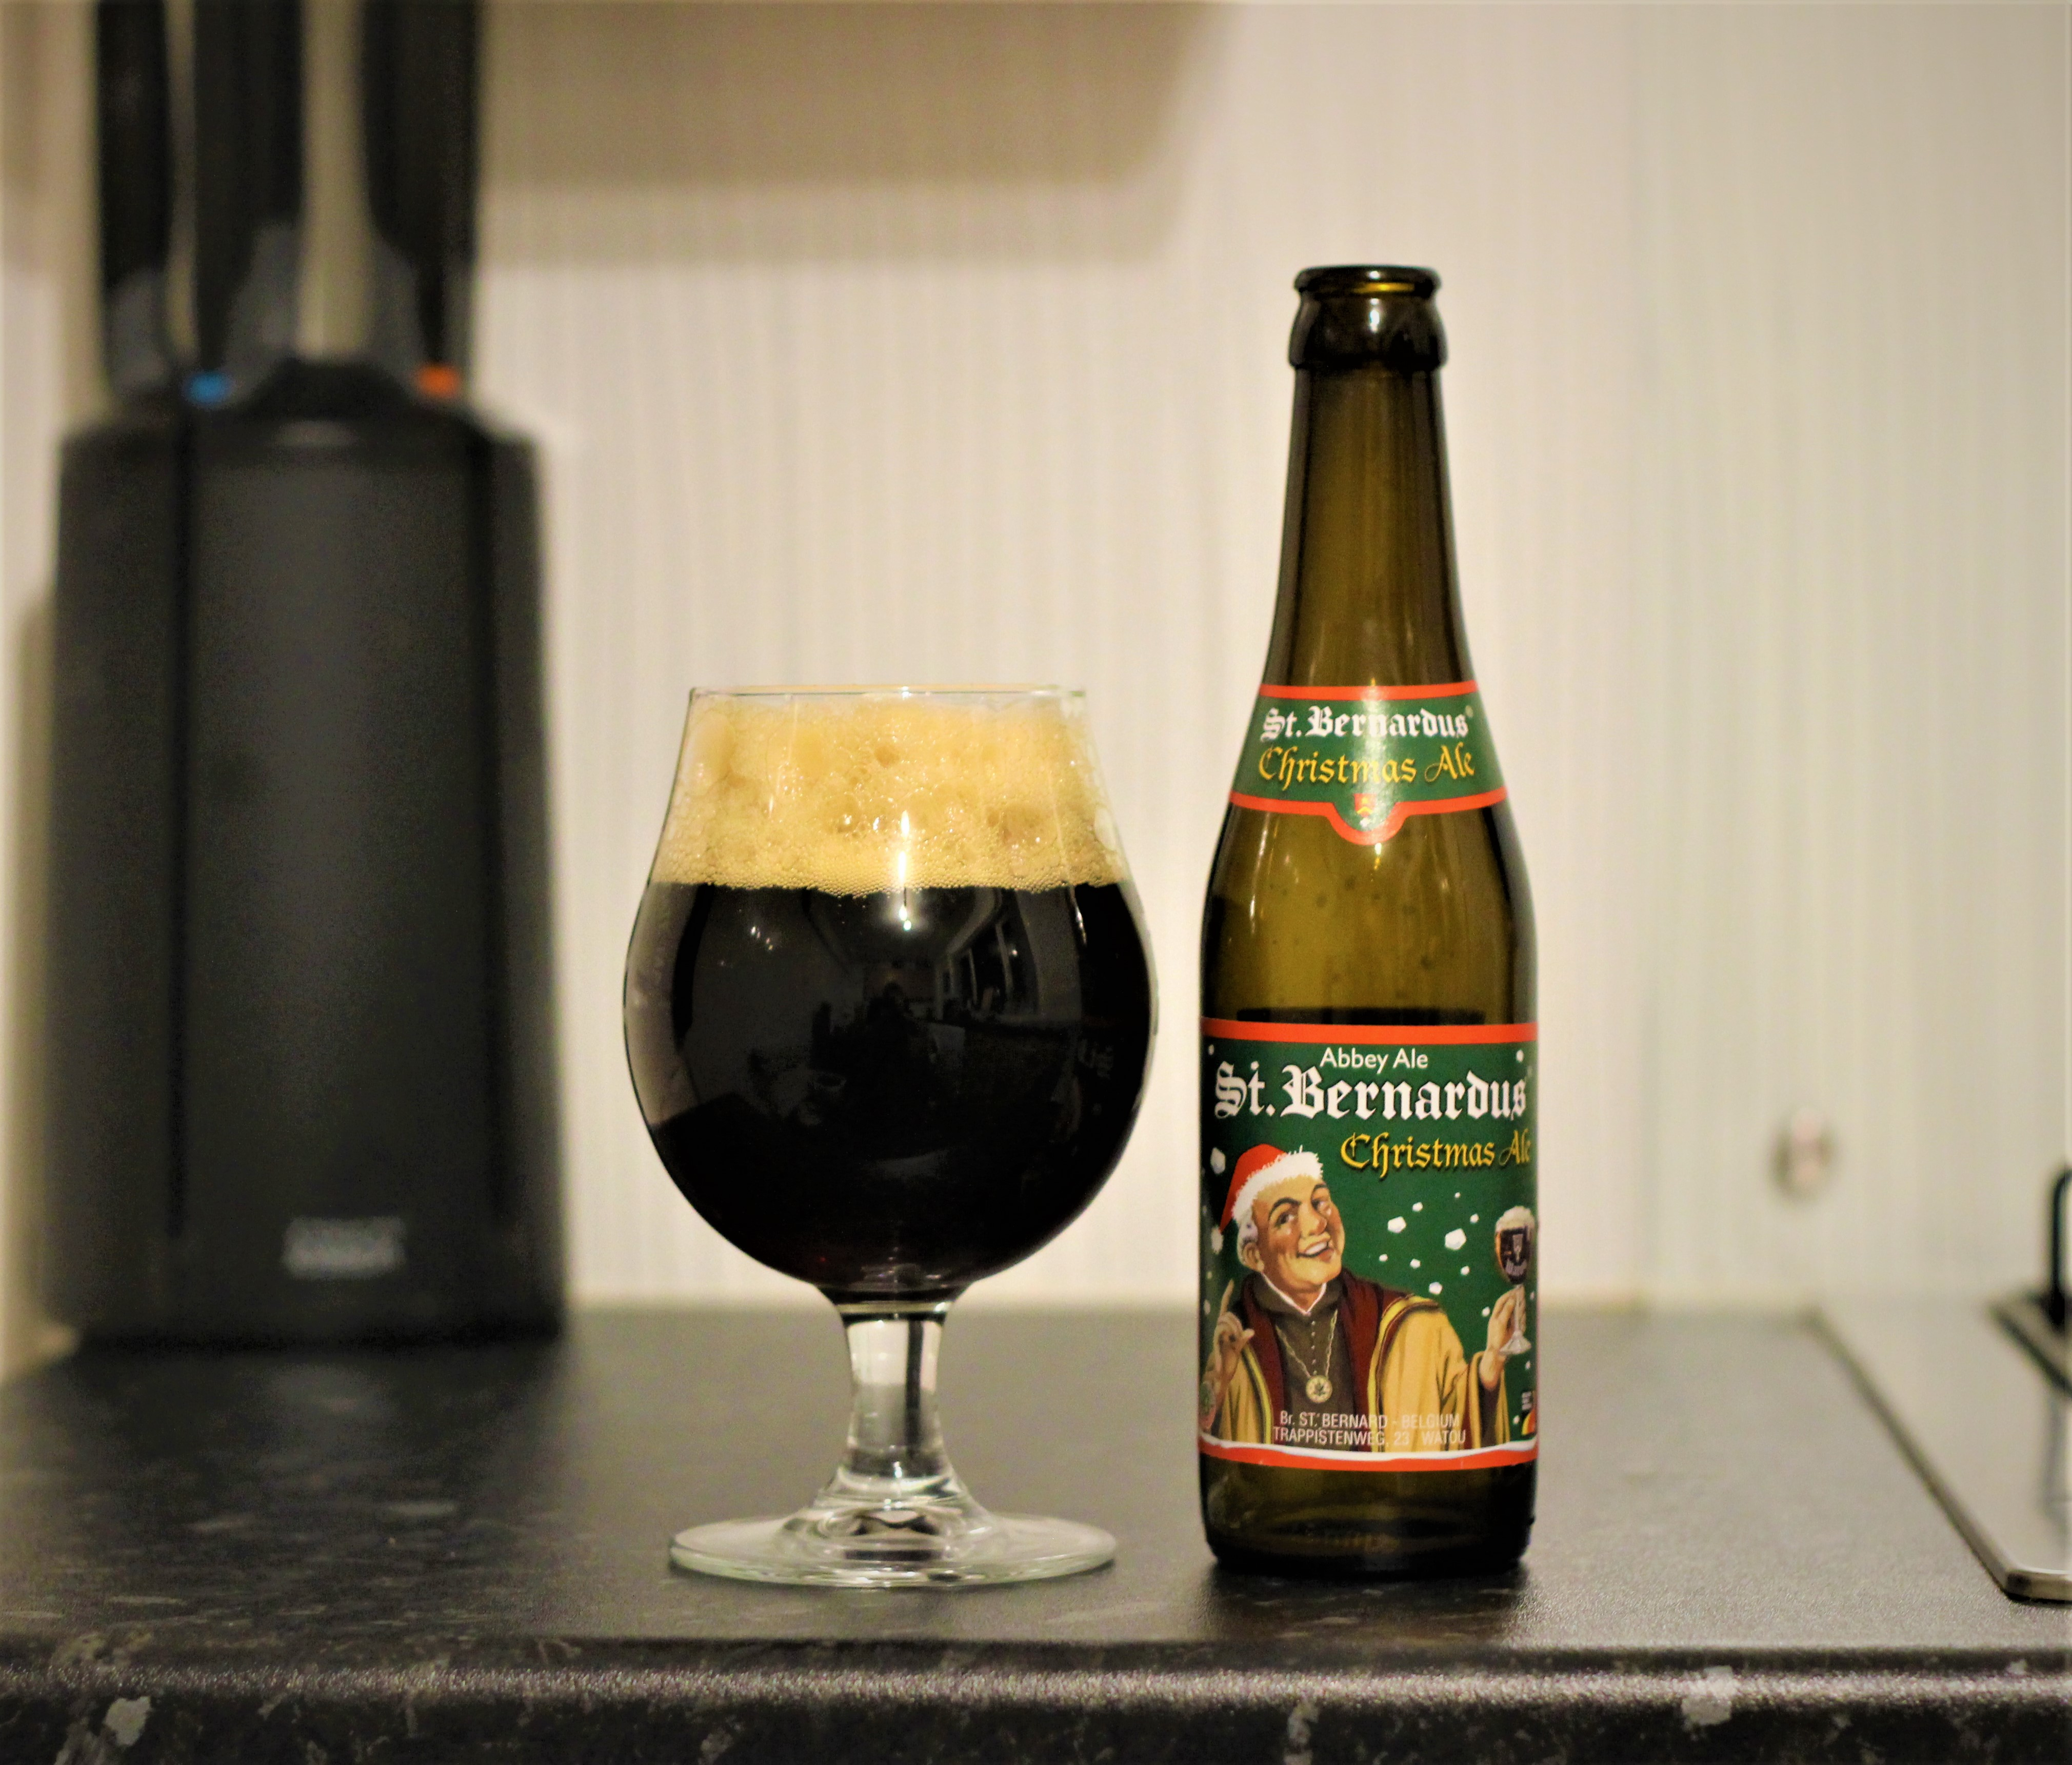 photo of st bernardus beer in a glass next to the bottle